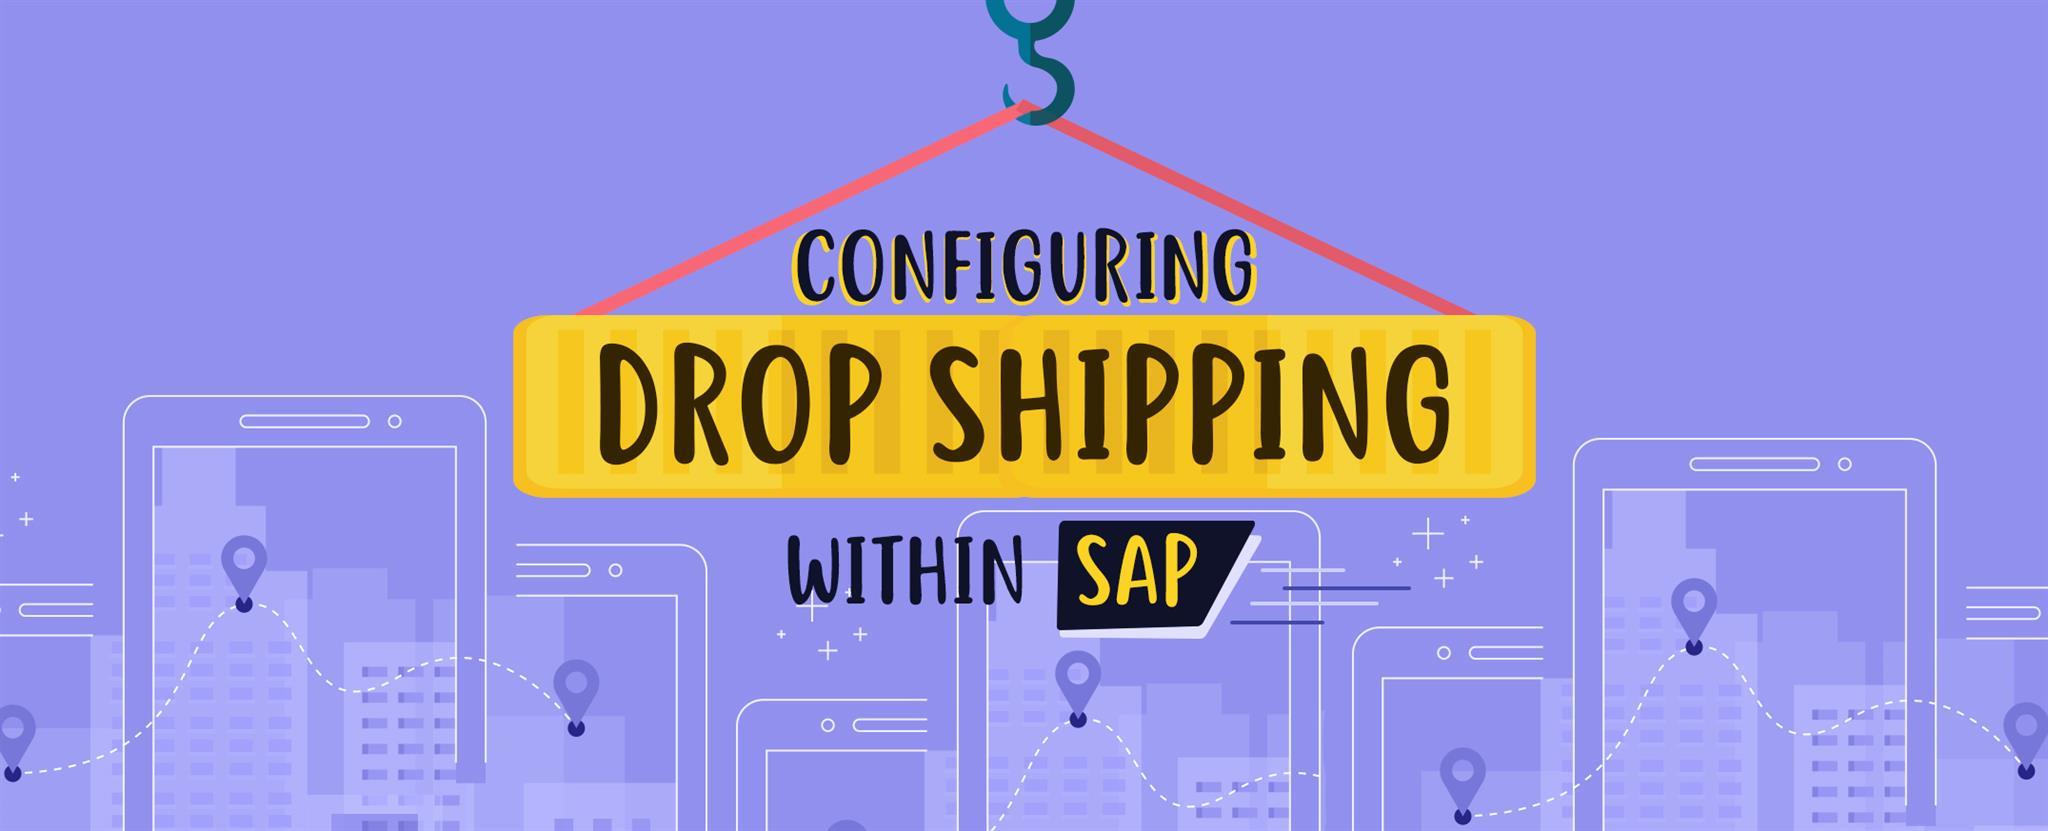 Configuring Drop Shipping Within SAP – All You Need To Know